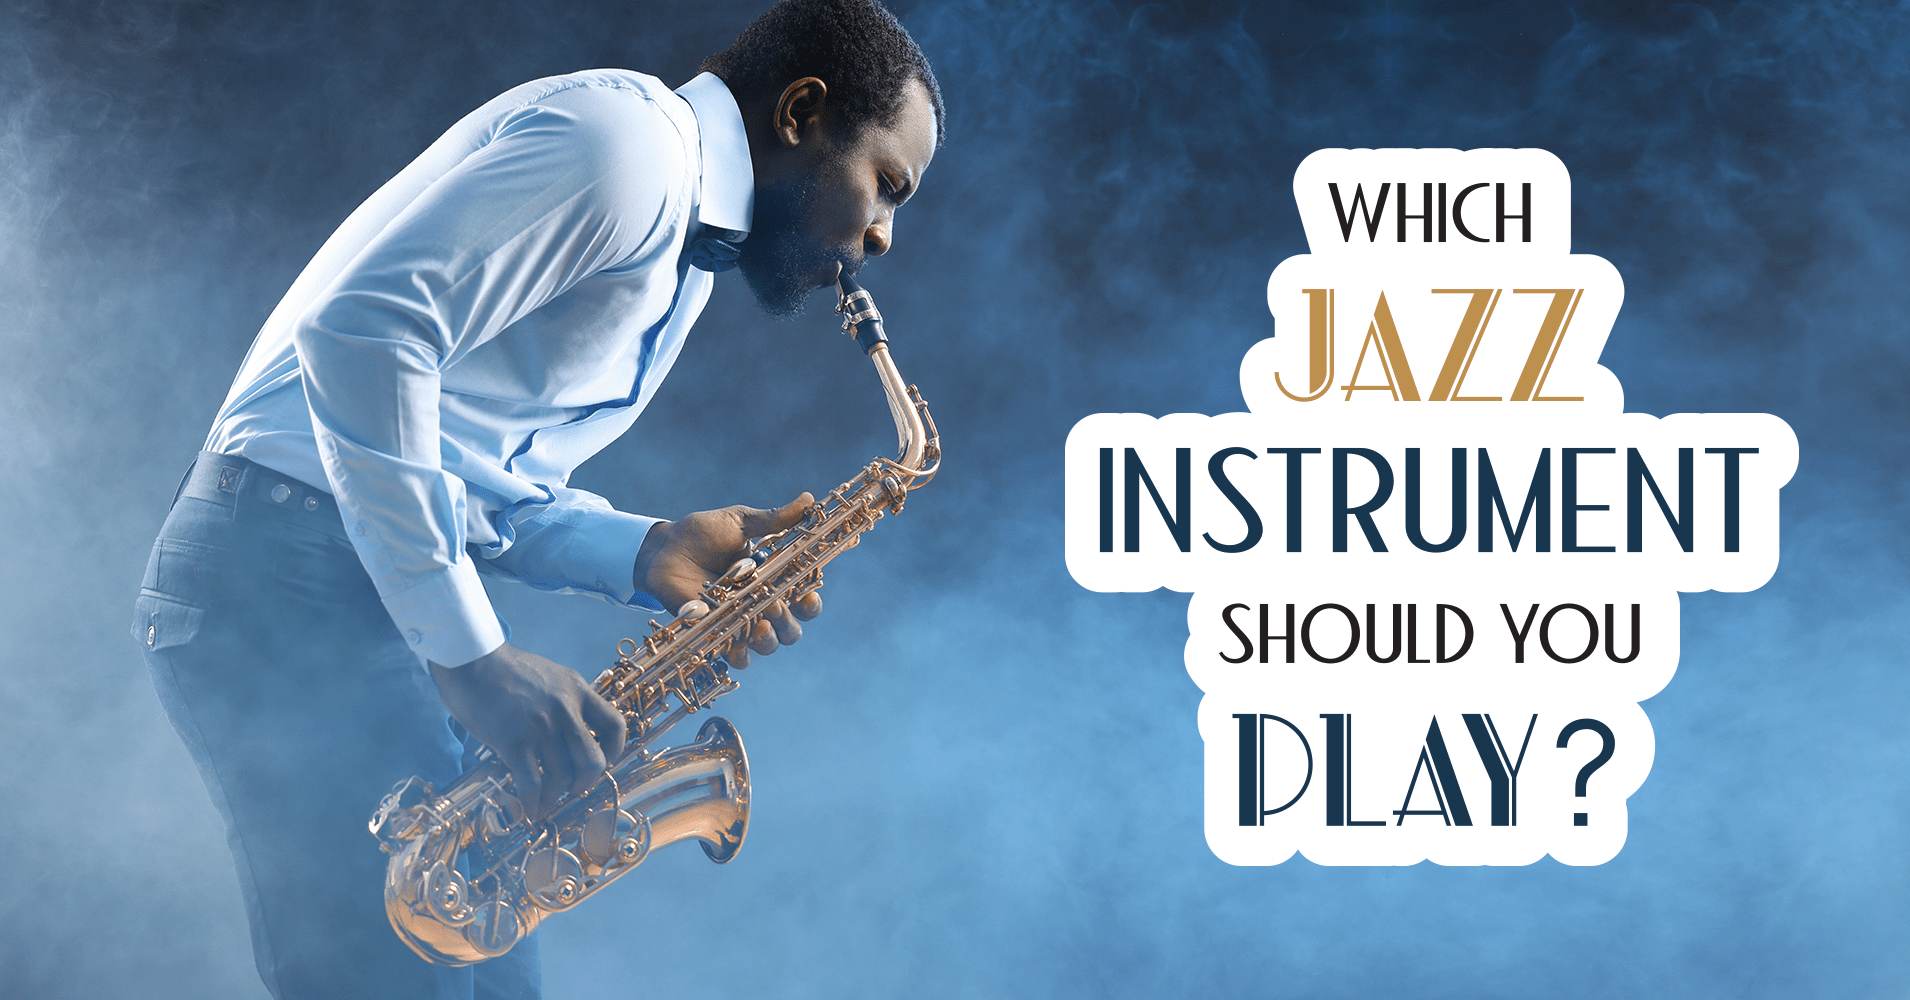 Which Jazz Instrument Should You Play